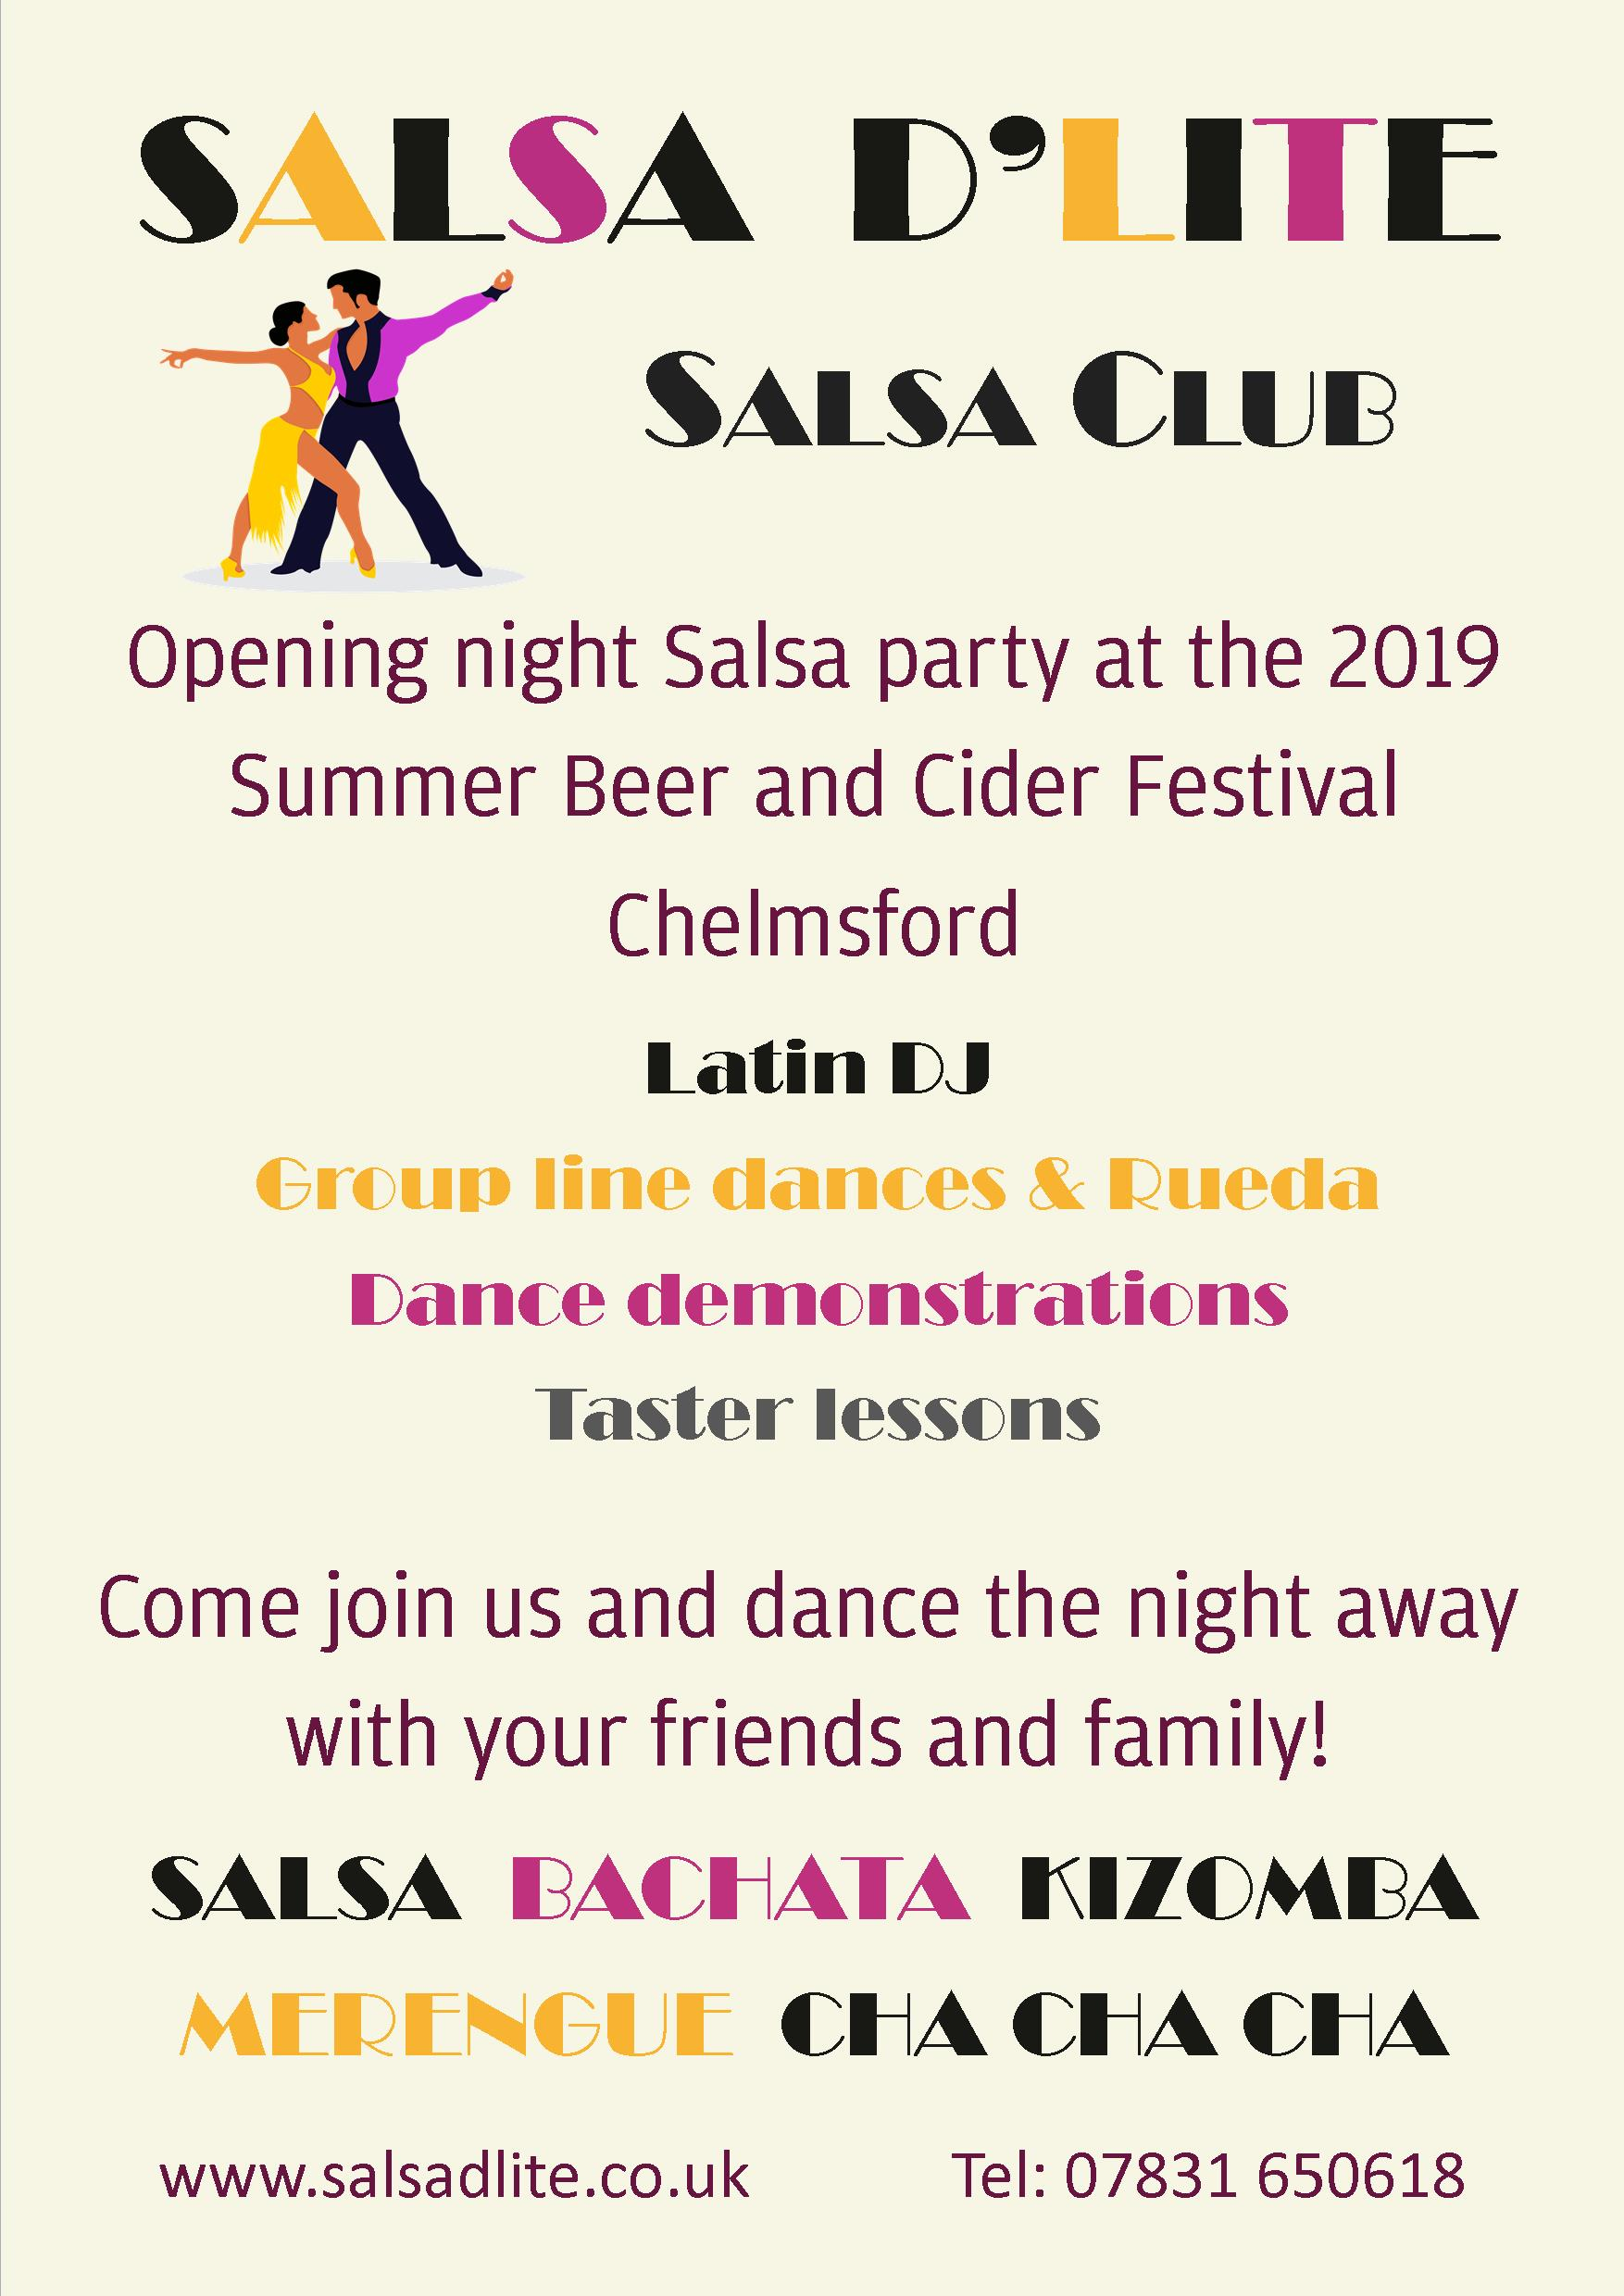 Salsa D'Lite Salsa Club - Opening night Salsa party at the 2019 Summer Beer and Cider Festival Chelmsford. Featuring Latin DJ, group line dances & Rueda, dance demonstrations and taster lessons. Come join us and dance the night away with your friends and family!